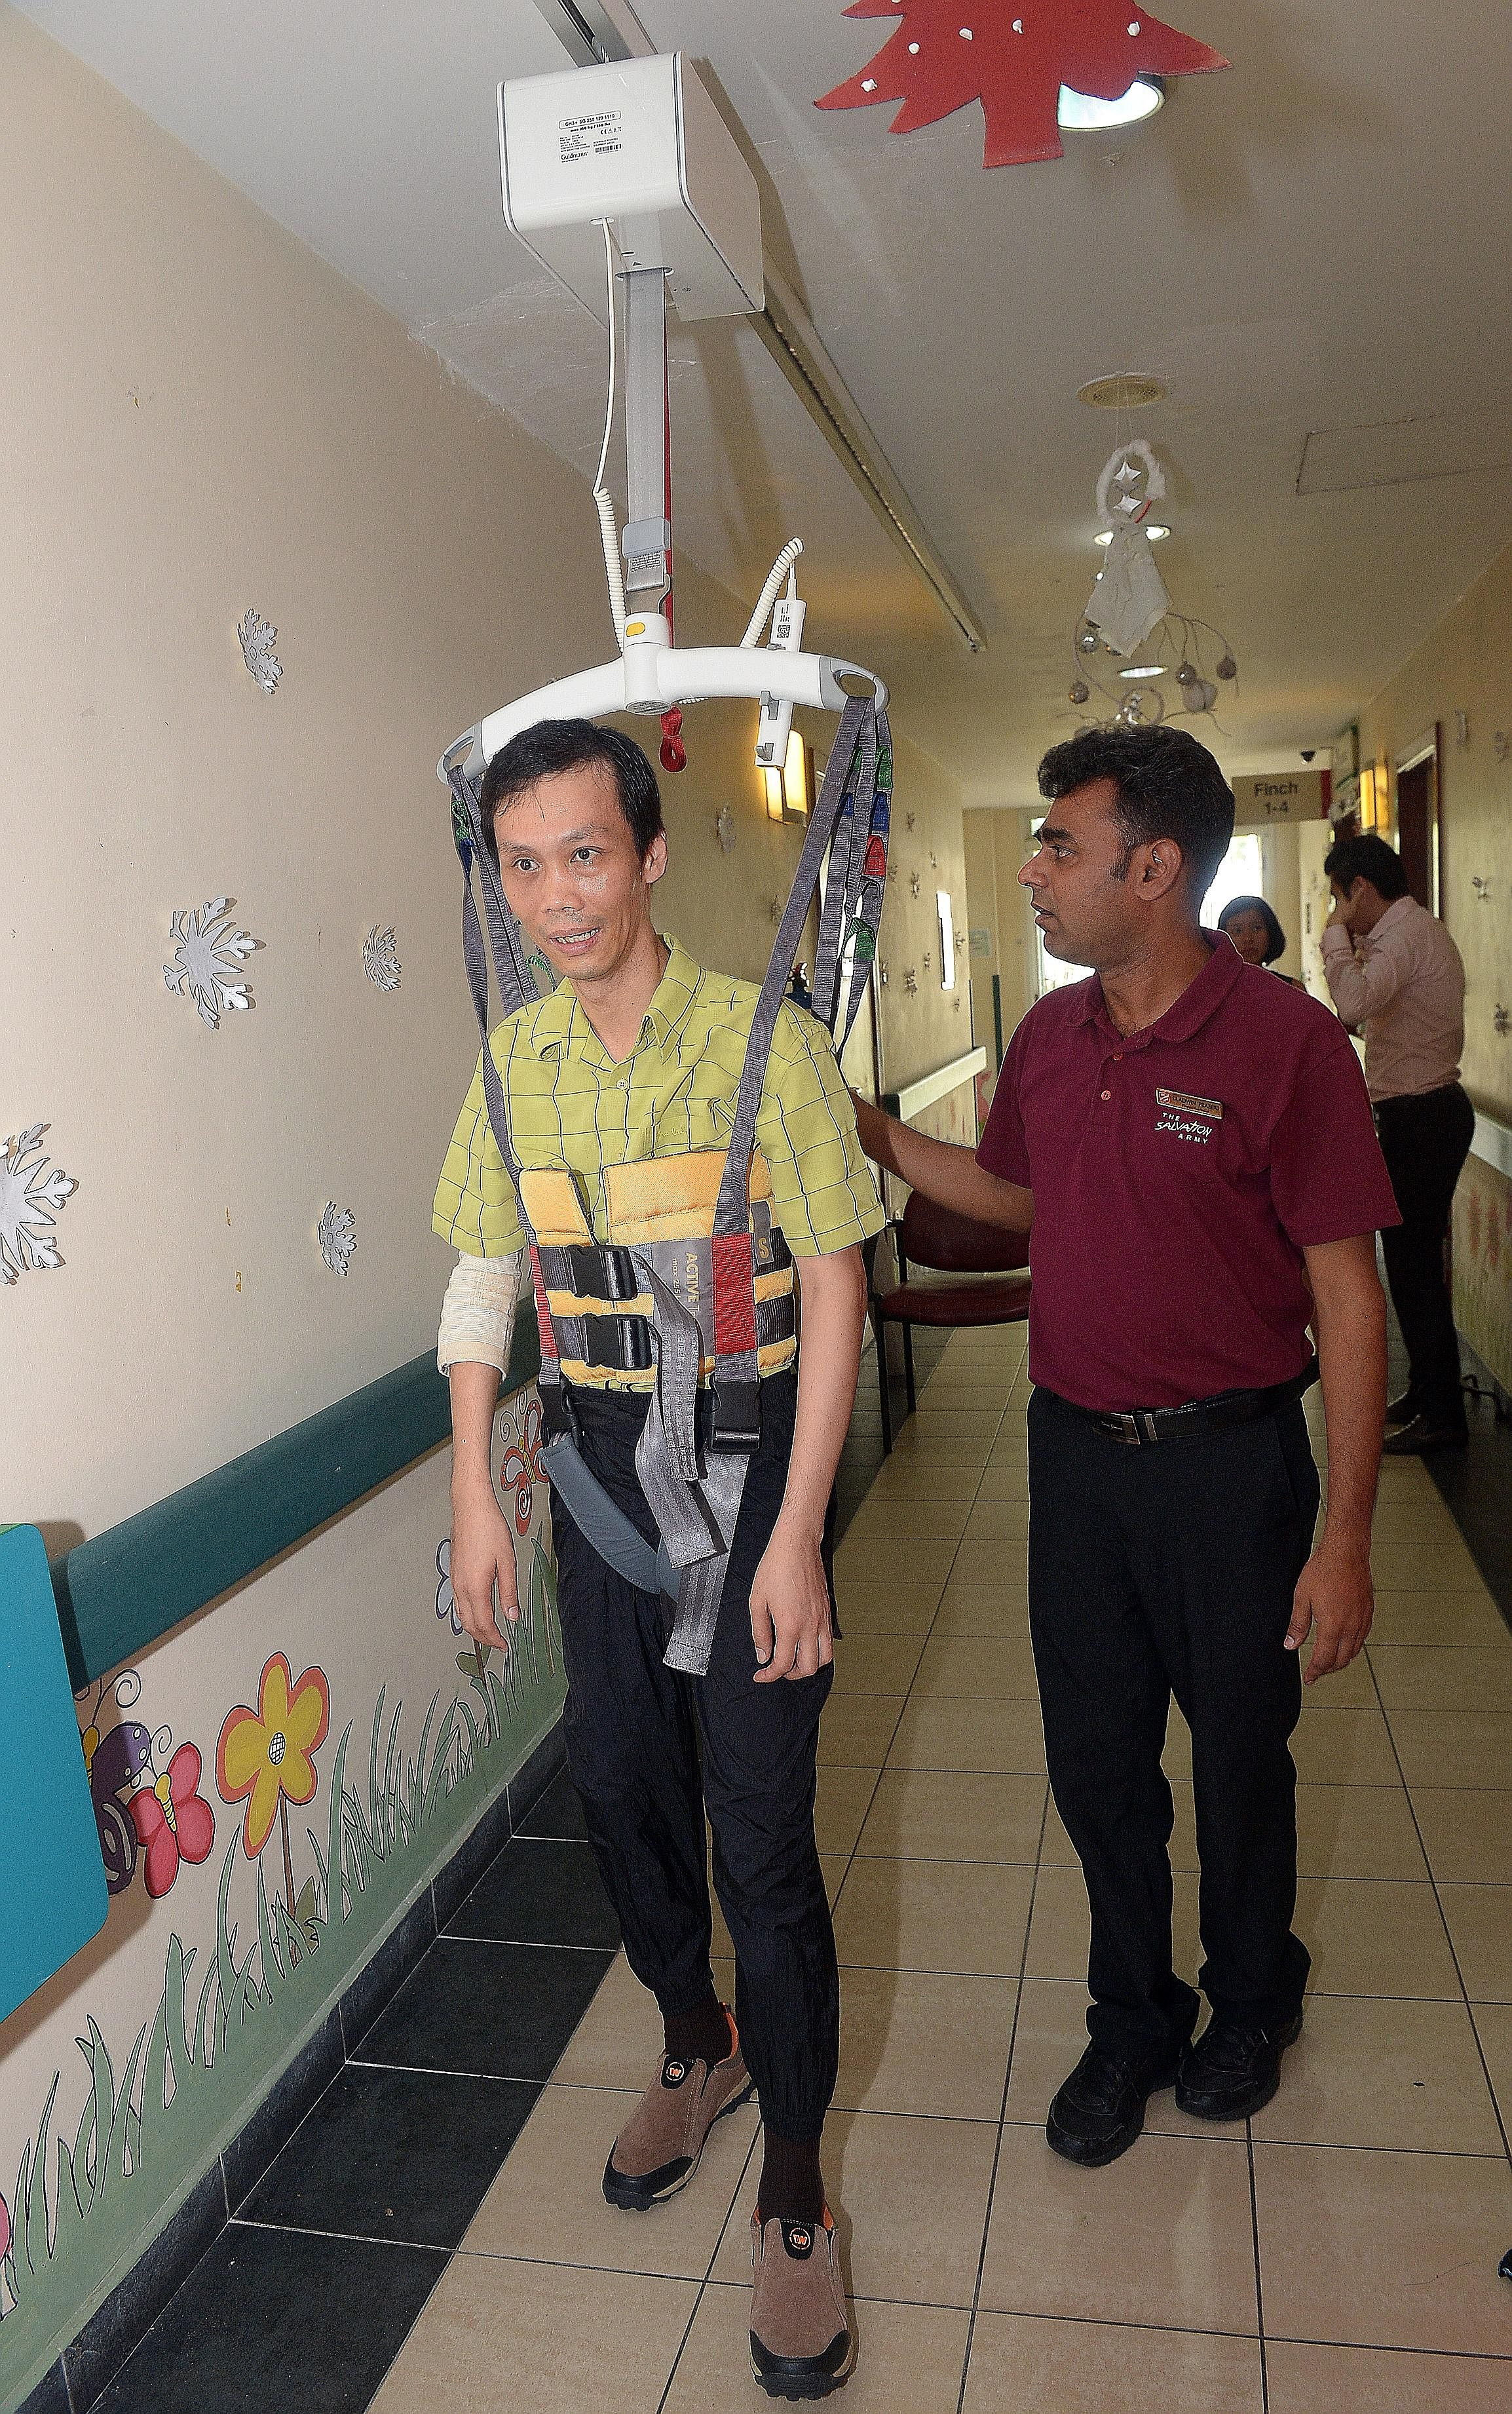 Senior physiotherapist Gladwin Prabhu, 39, helping along client Chang Phan Yong, 41, who is strapped into a newly installed ceiling hoist at The Salvation Army's Peacehaven Nursing Home, yesterday. Funds for the $10,000 hoist were donated by Nippon P